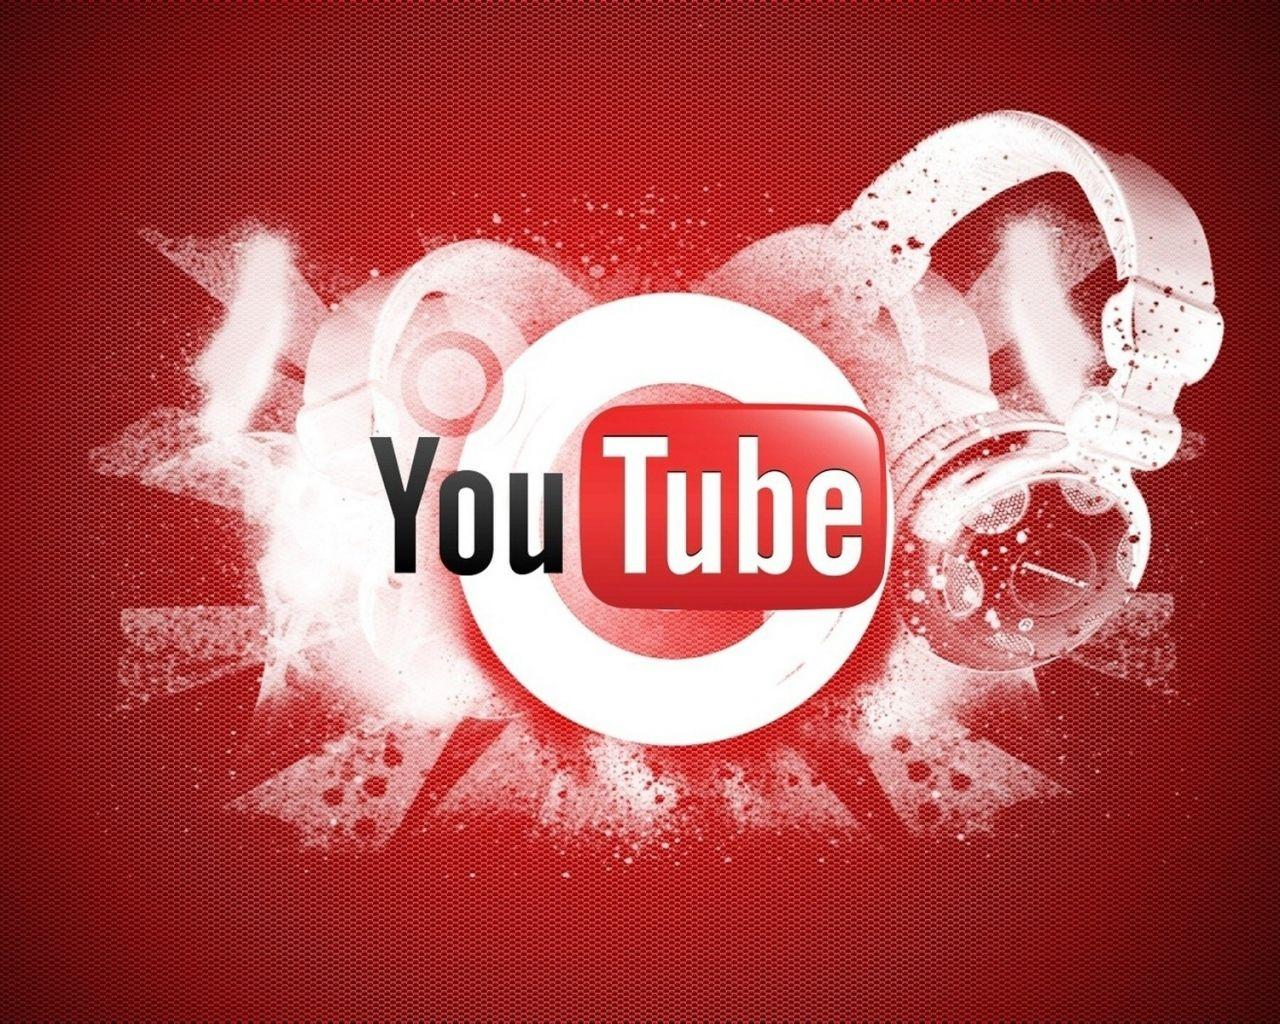 Youtube Logo Wallpapers Wallpaper Cave